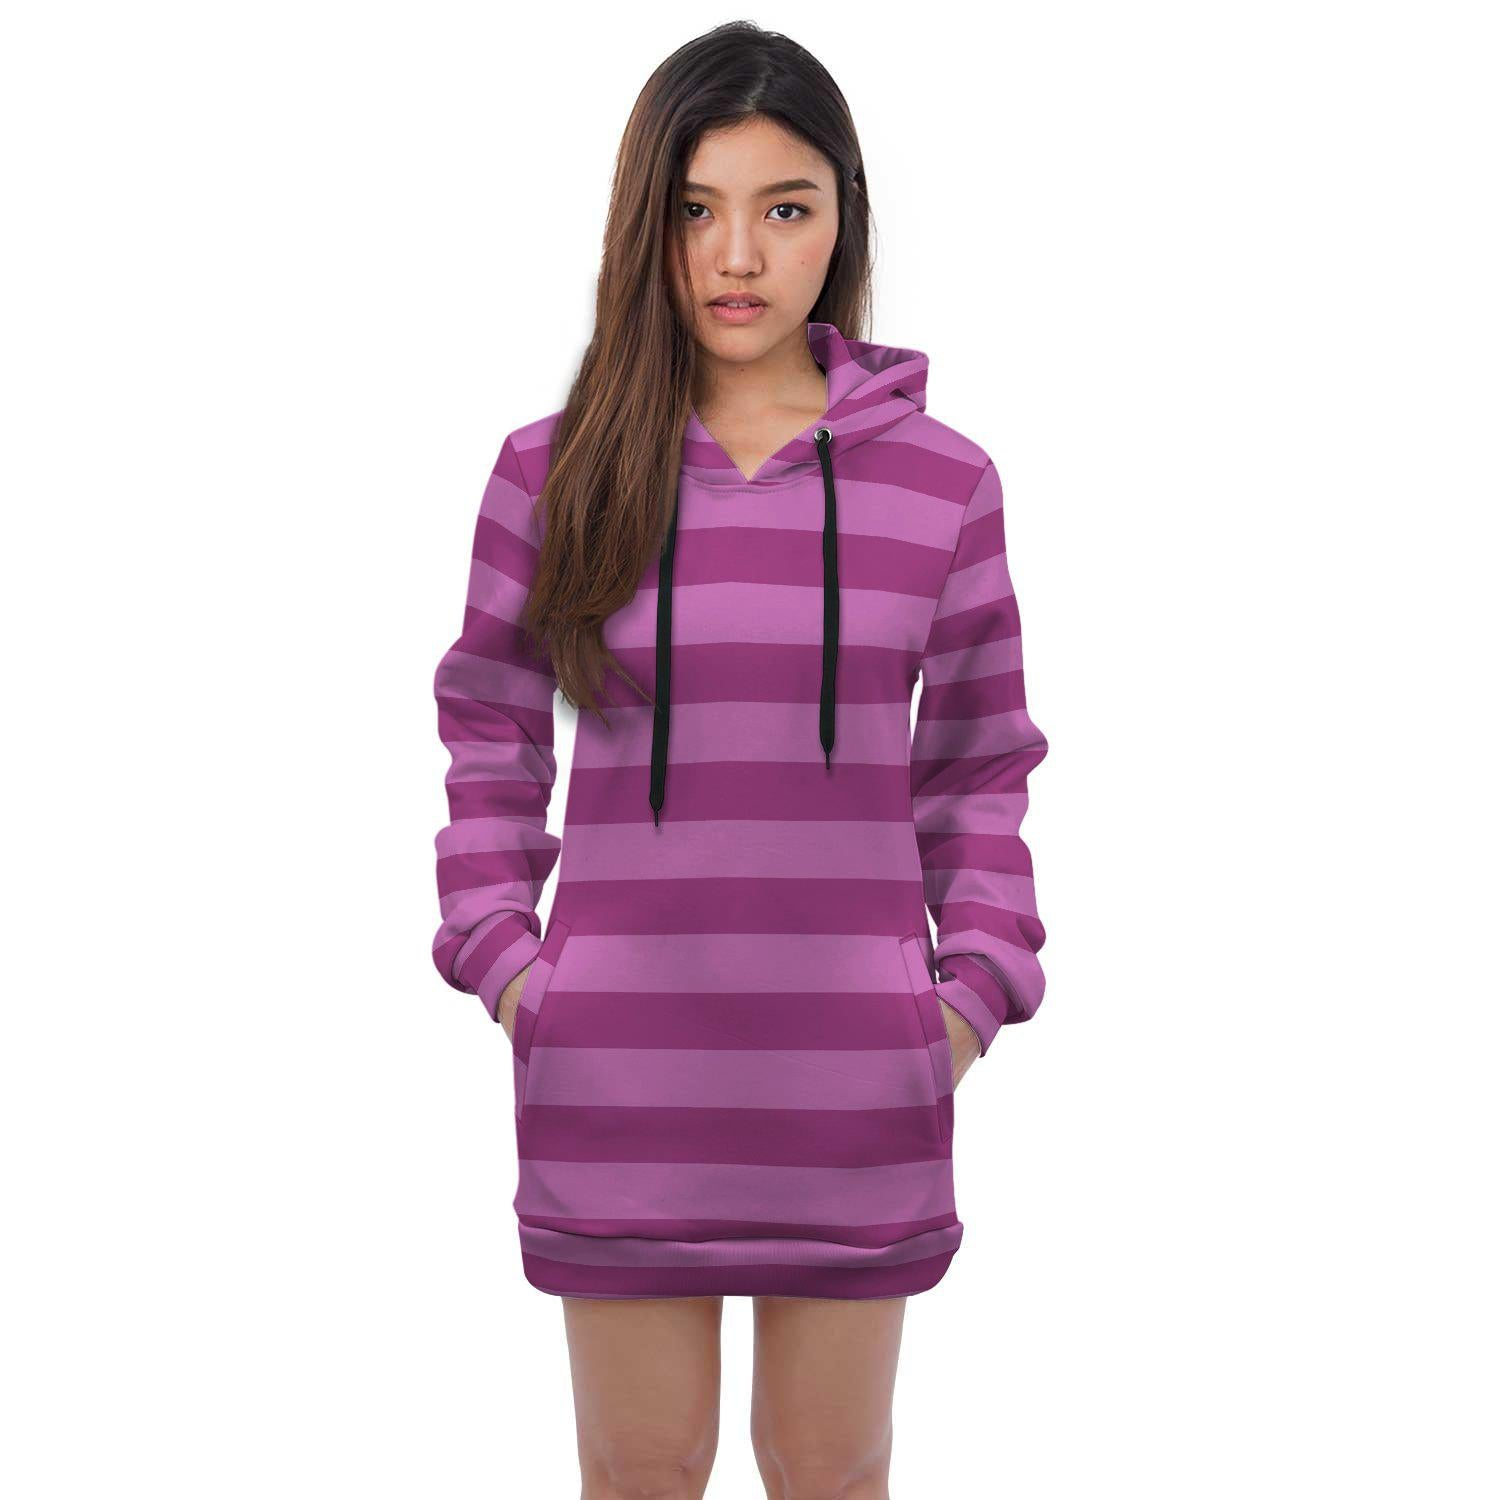 Cheshire Cat Hoodie Dress